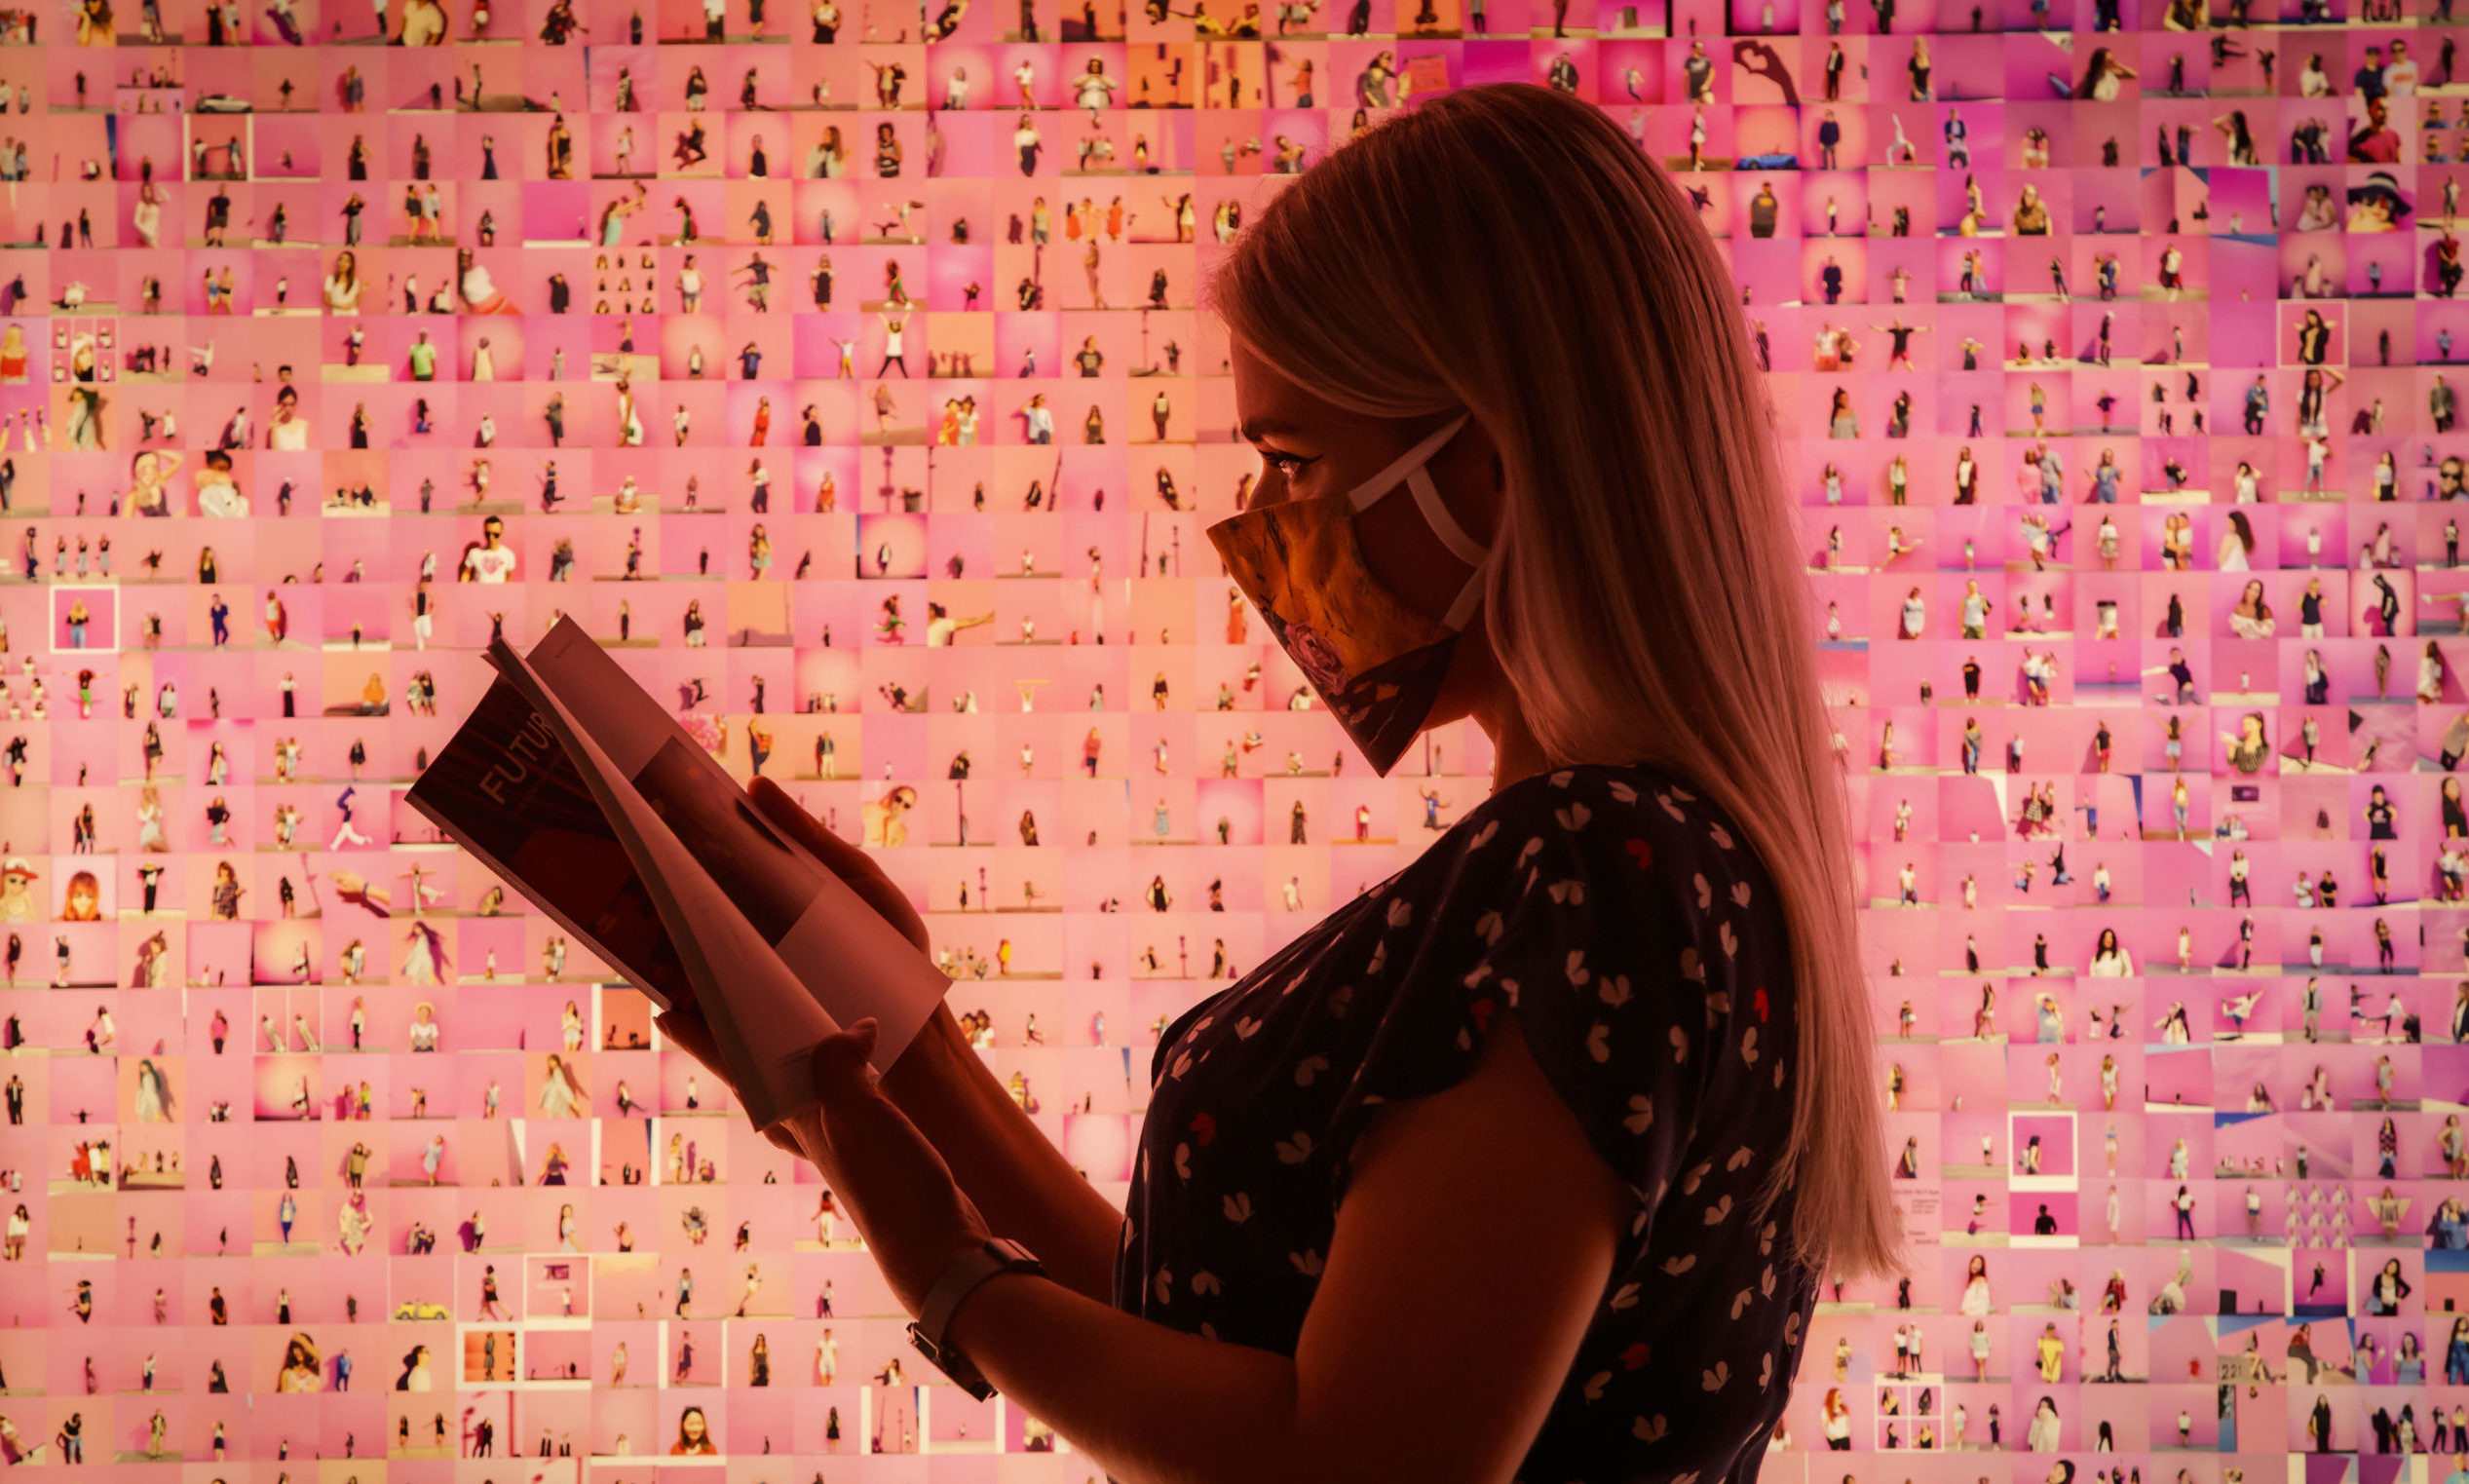 A visitor reads a program in front of a work titled 'Murmurations #23: 10,000 selfies (with a pink wall in Los Angeles)' by artist Stephanie Potter Corwin, that forms part of the Aesthetica Art Prize exhibition on show at York Art Gallery in Yorkshire. PA Photo. Picture date: Thursday August 13, 2020. Following reopening the exhibition is free to visit, with the gallery hoping that by removing admission charges there will be a higher number and increased diversity of visitors. The Aesthetica Art Prize is a celebration of contemporary art. The annual prize, now in its 13th year, provides a platform for both established and emerging practitioners from across the world.Photo credit should read: Danny Lawson/PA Wire